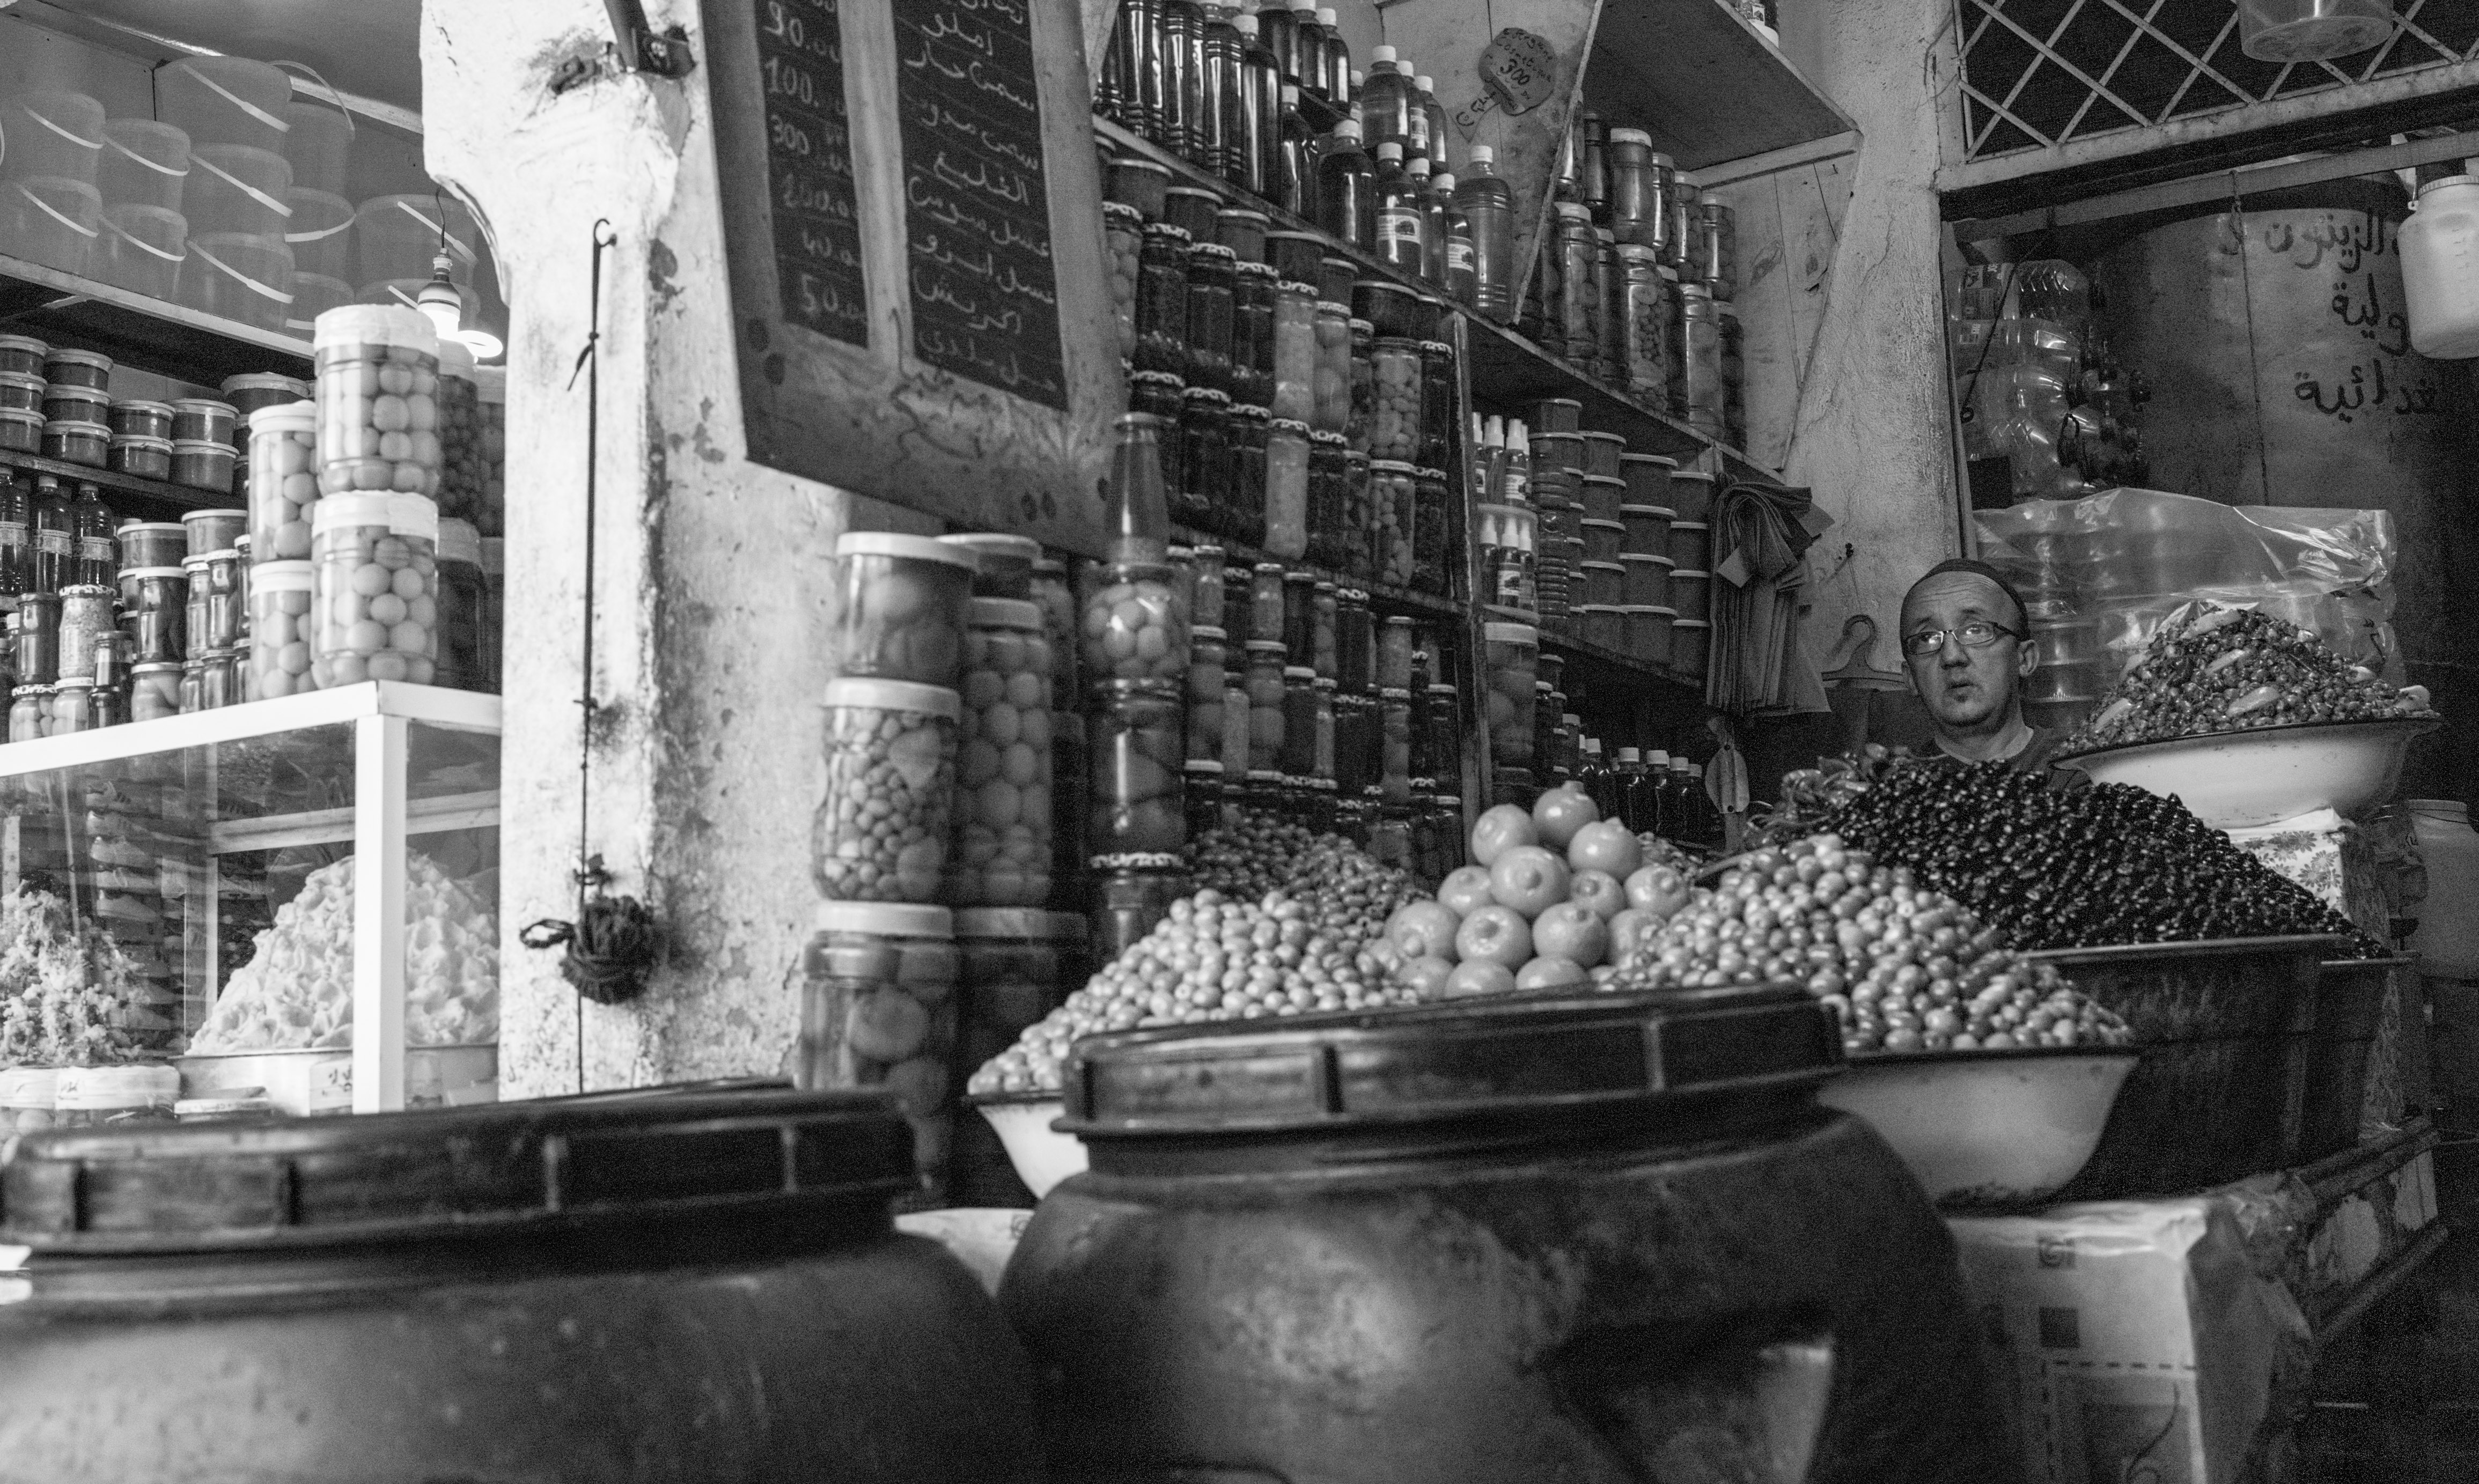 For sale at Marrakech-Medina (Marrakesh, Morocco) with Leica M Monochrom (Leica Summilux-M 35mm f/1.4 ASPH.) by Magnus L Andersson (photography.anderssoneklund.se) at 2017-03-28 13:04:19